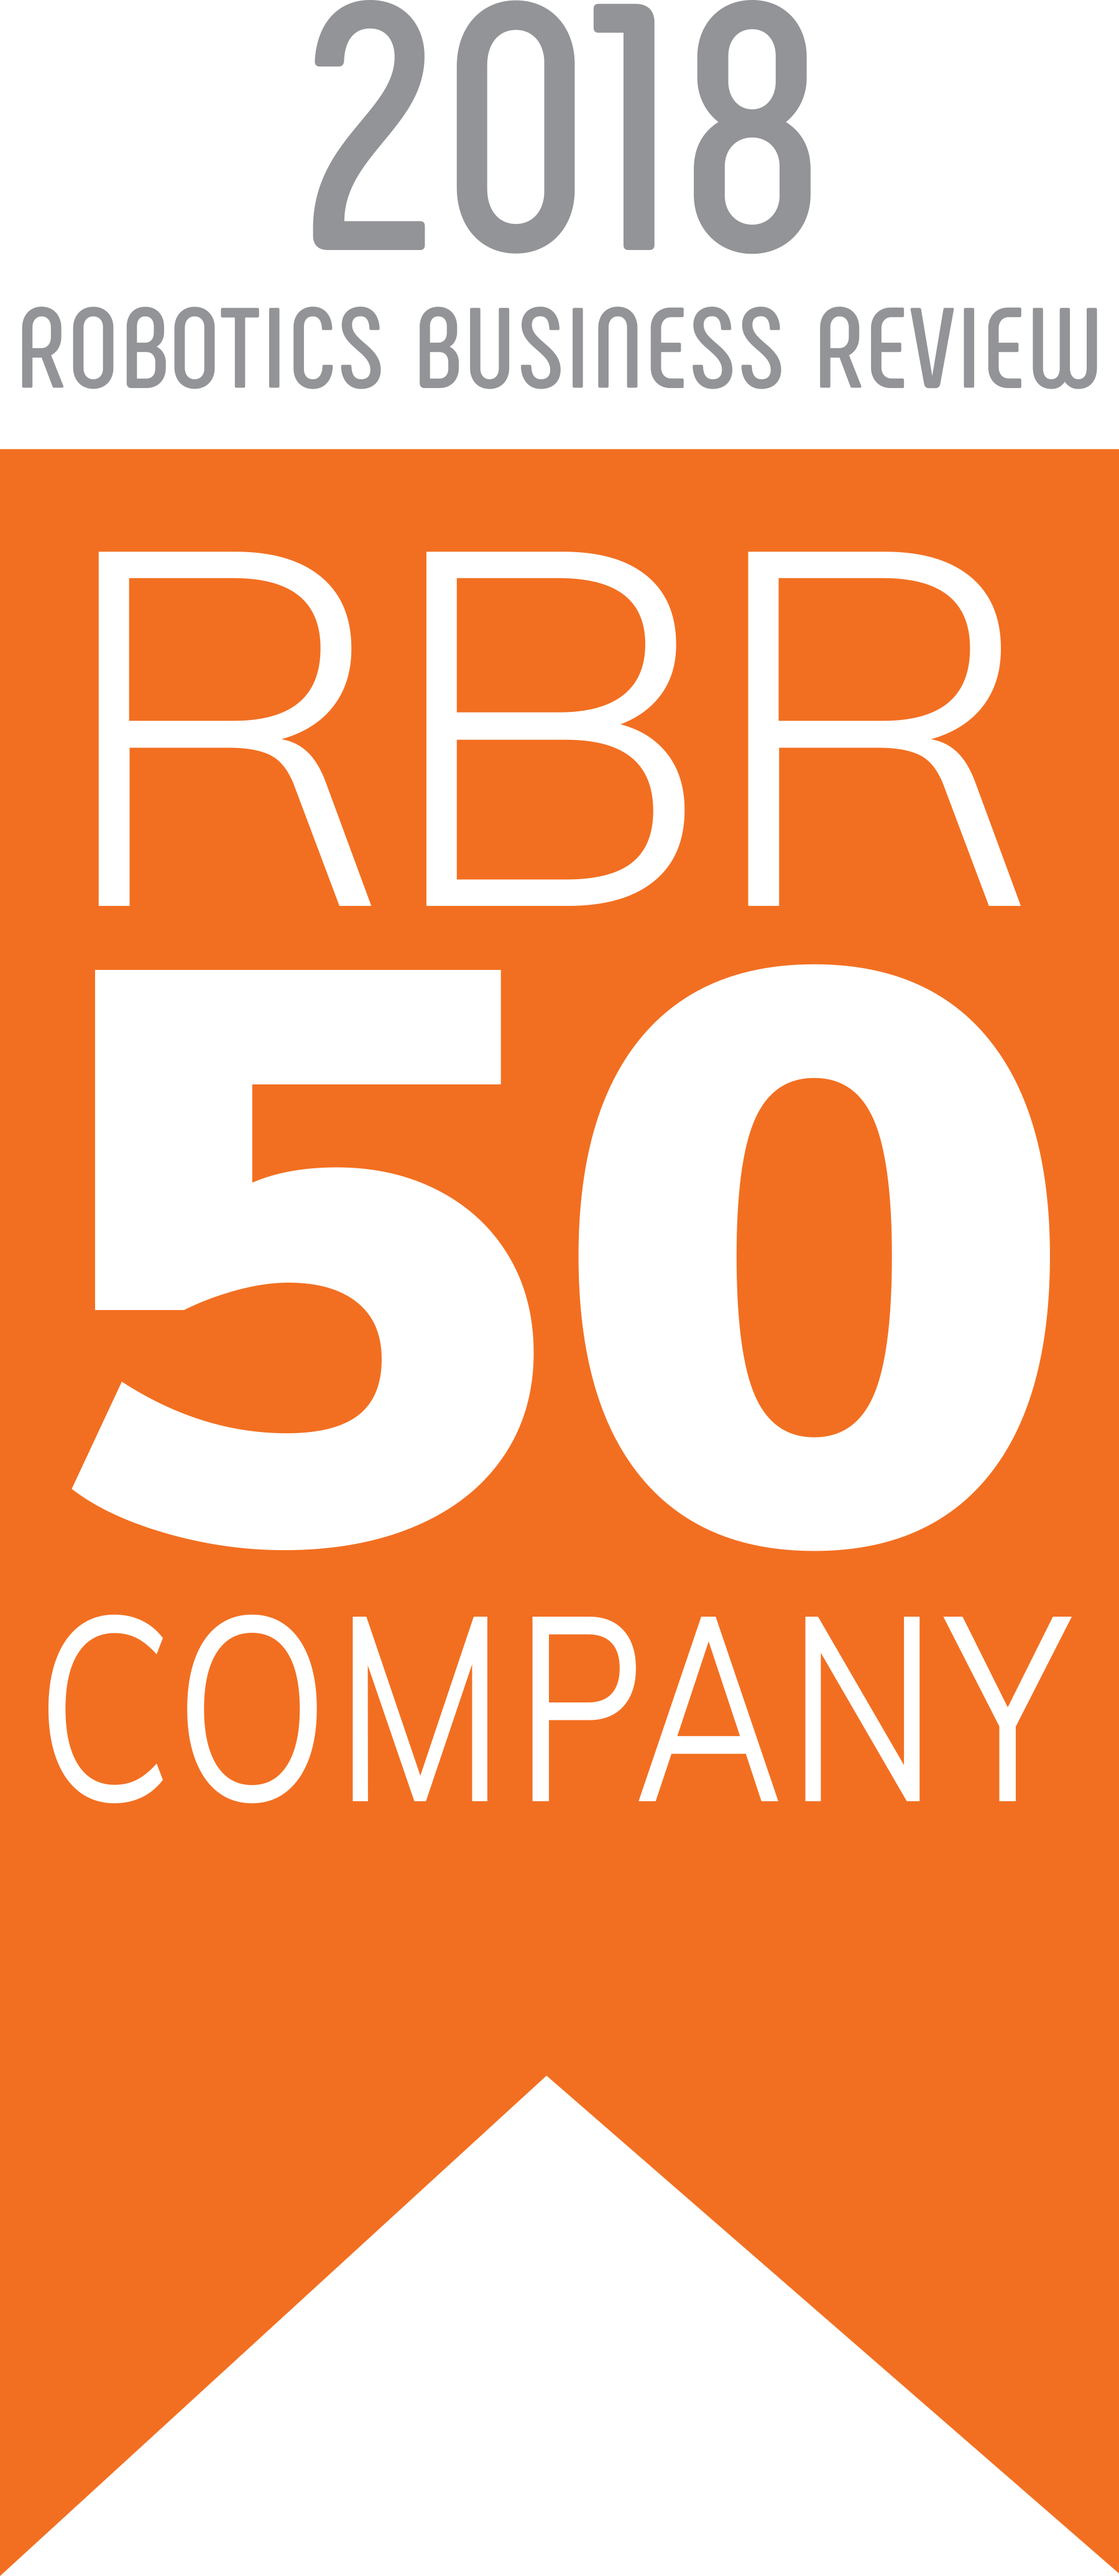 Robotiq Named One of the Top 50 Most Influential Companies in Robotics!